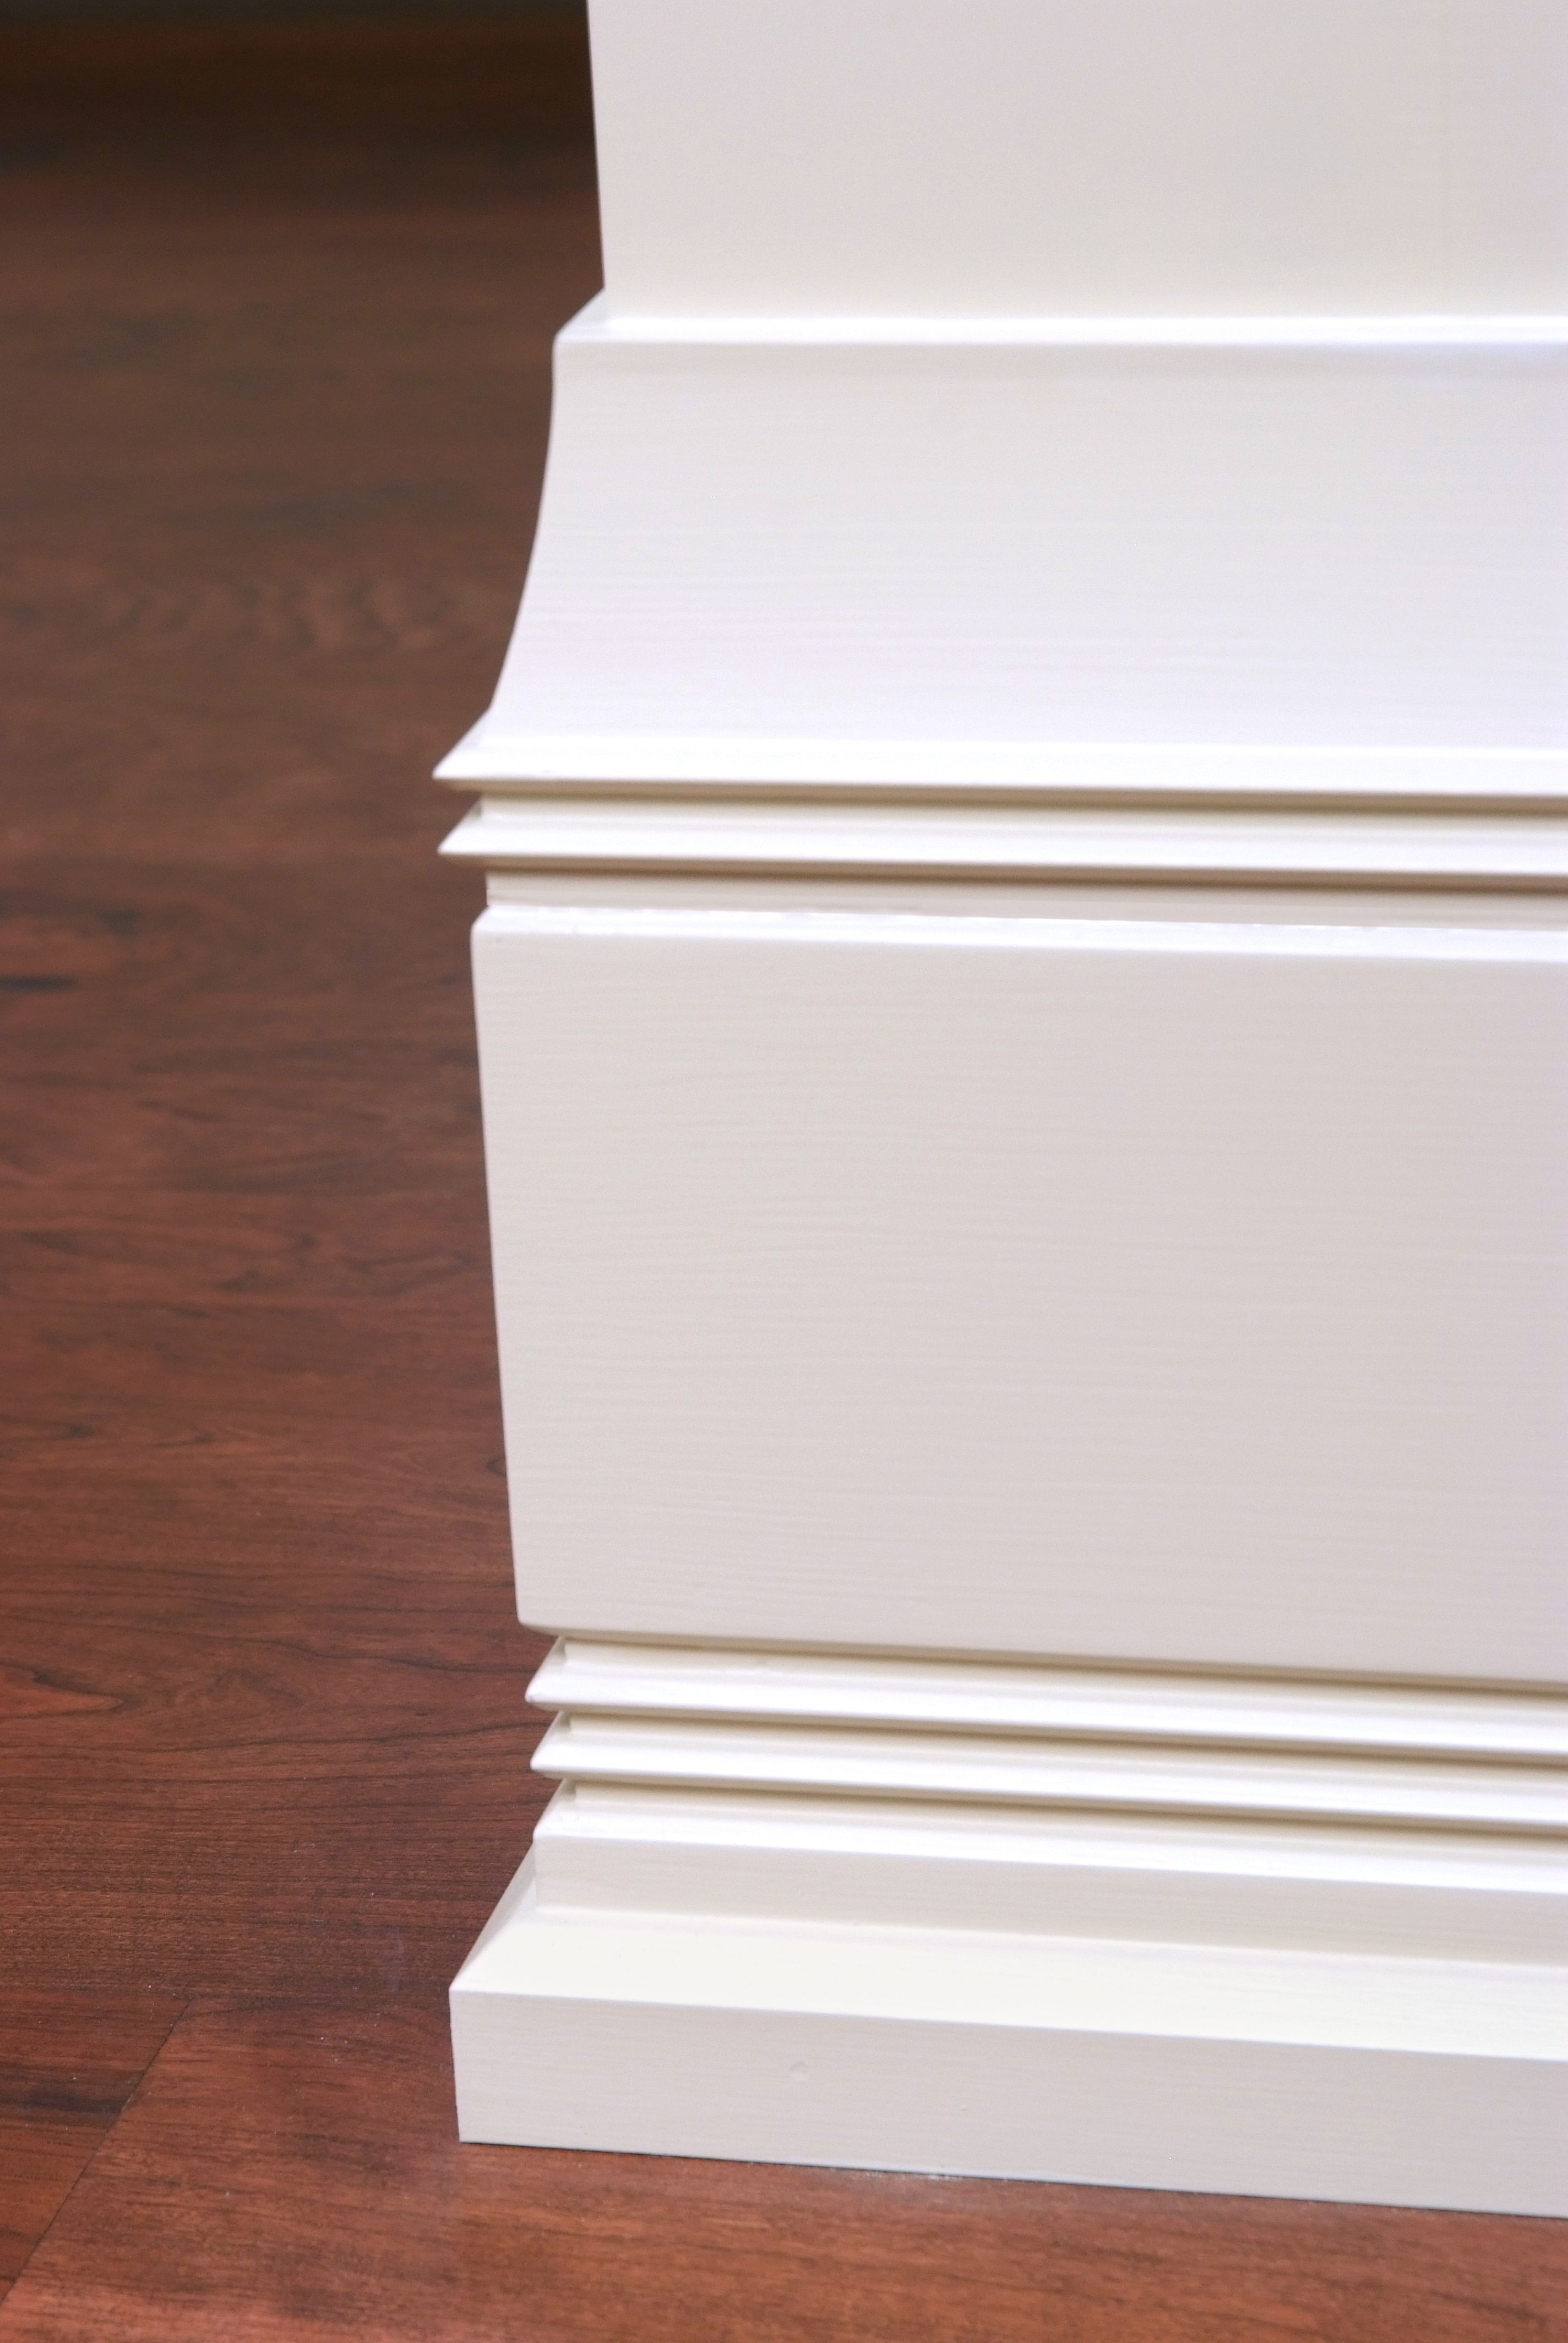 Molding amp trim find baseboard and crown molding designs online - Custom Painted Poplar Baseboard And Shoe Molding Detail